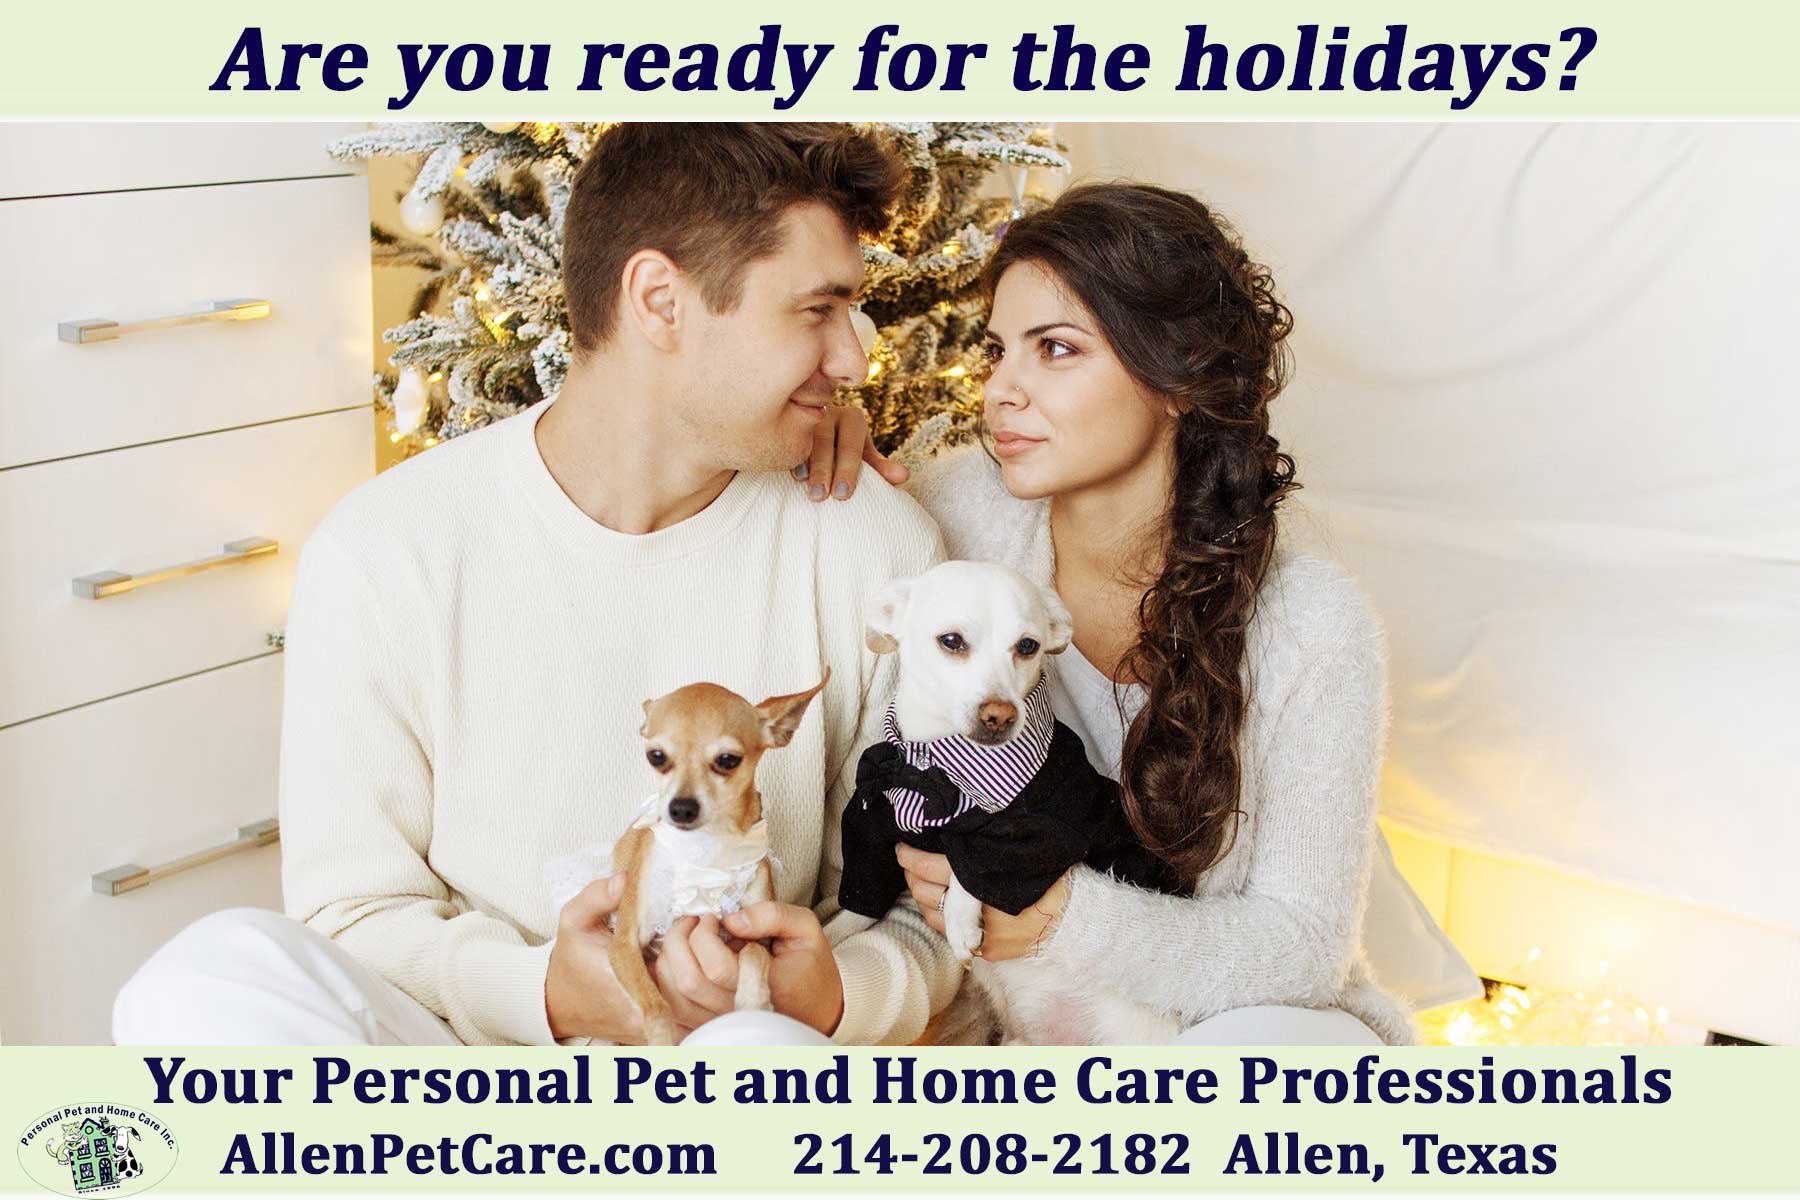 pet sitting for the holidays in Allen, Texas